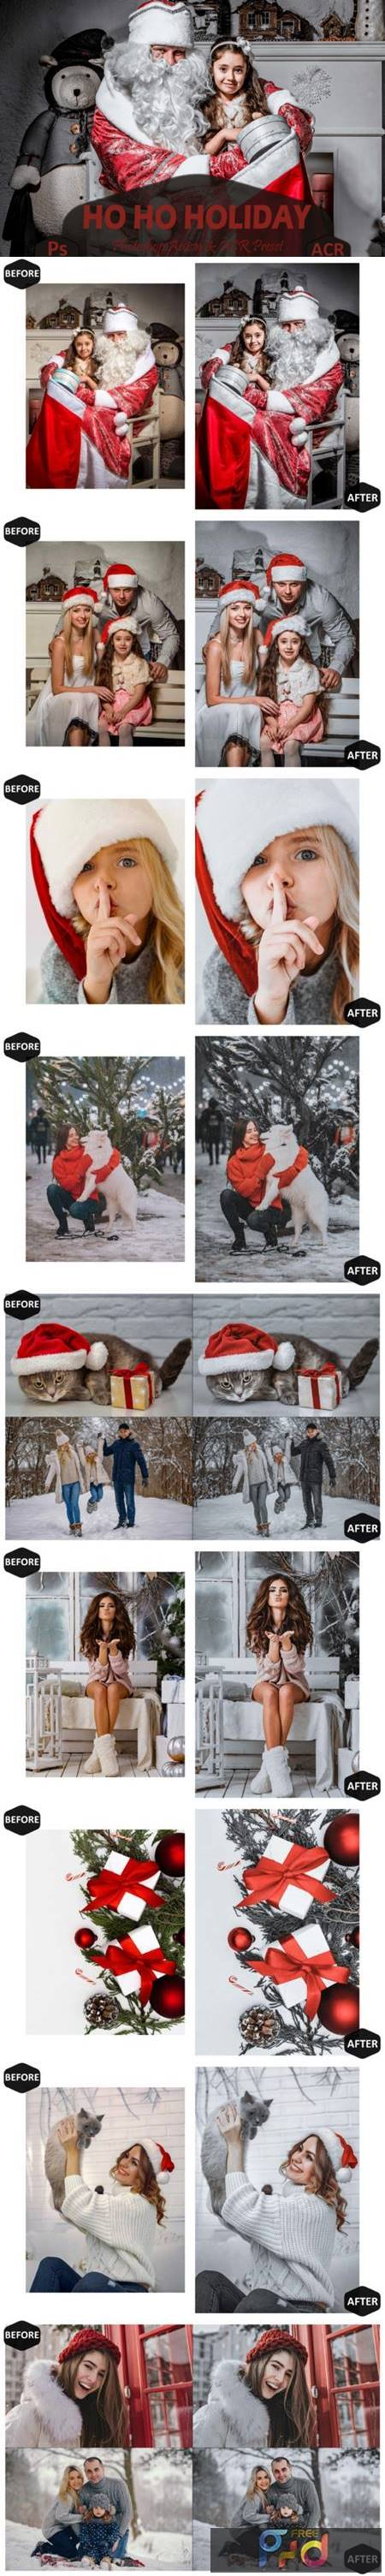 10 Ho Ho Holiday Photoshop Actions 7099826 1